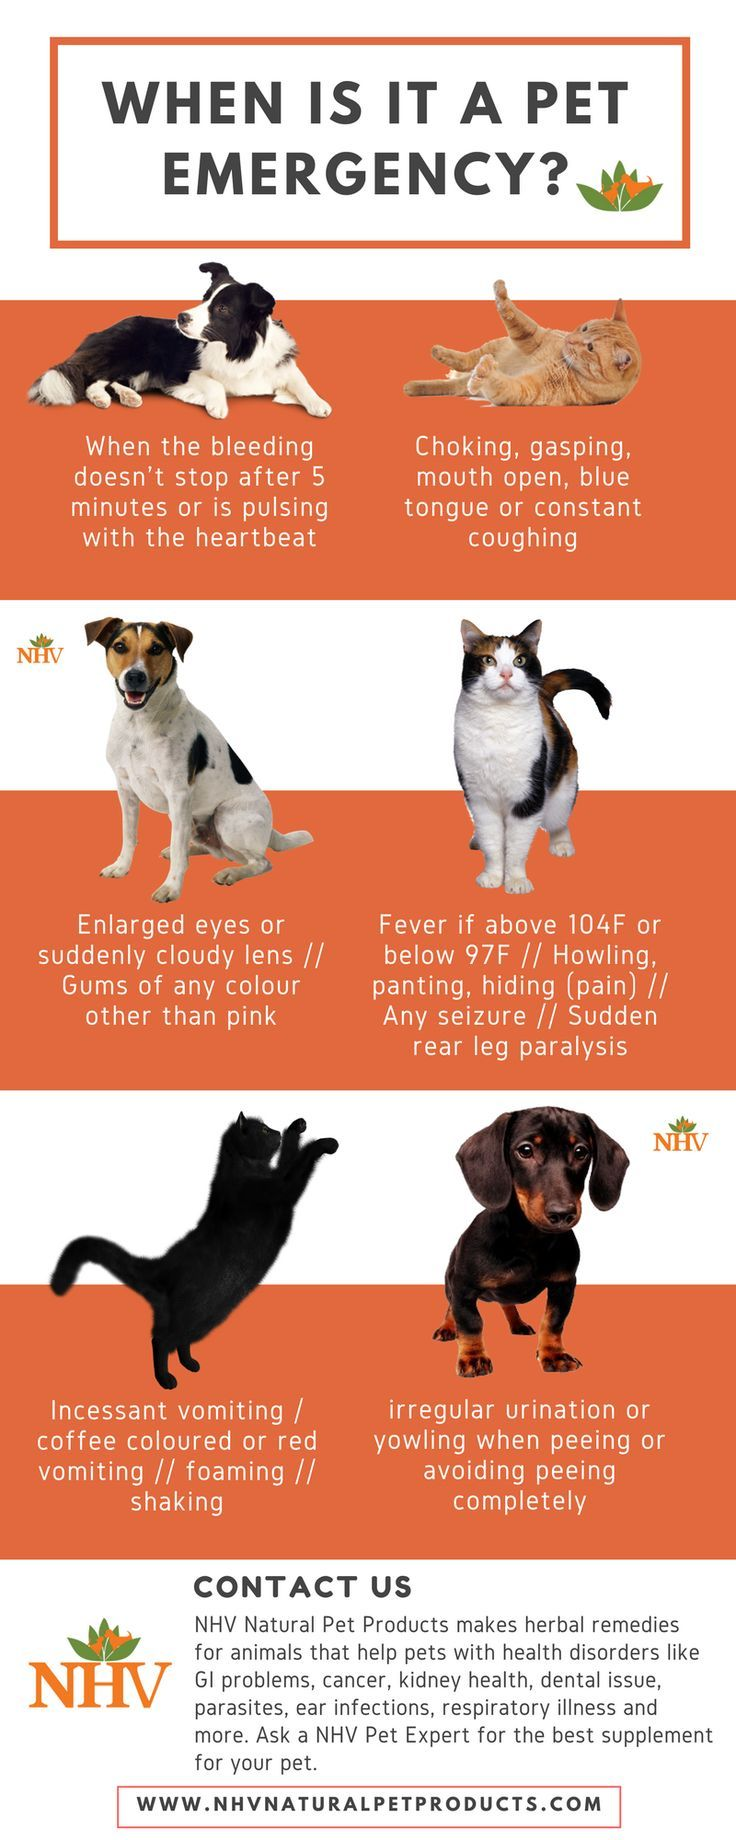 5 Signs Your Pet May Be Ill Pet emergency, Animal